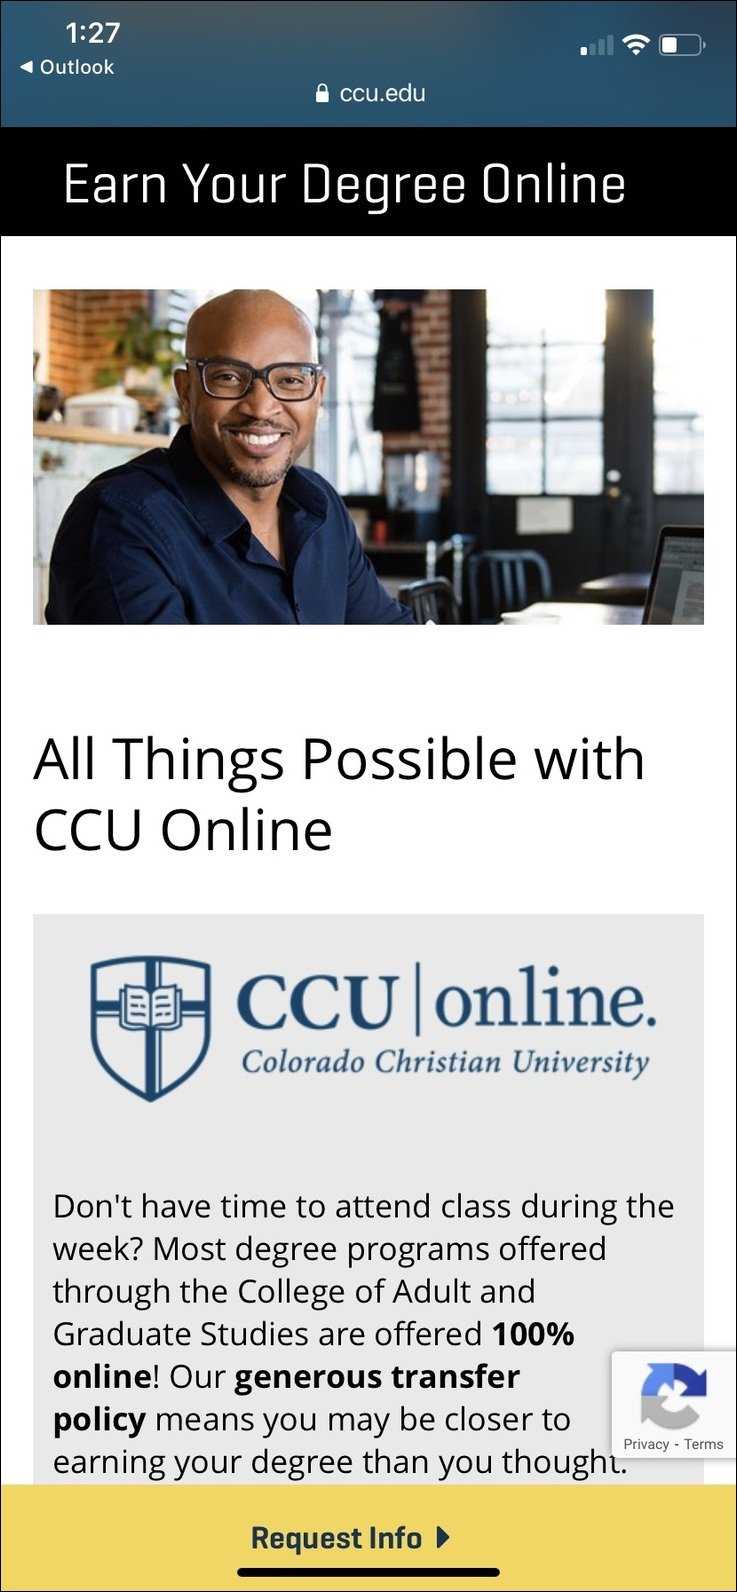 CCU Mobile Landing Page from Facebook Campaign